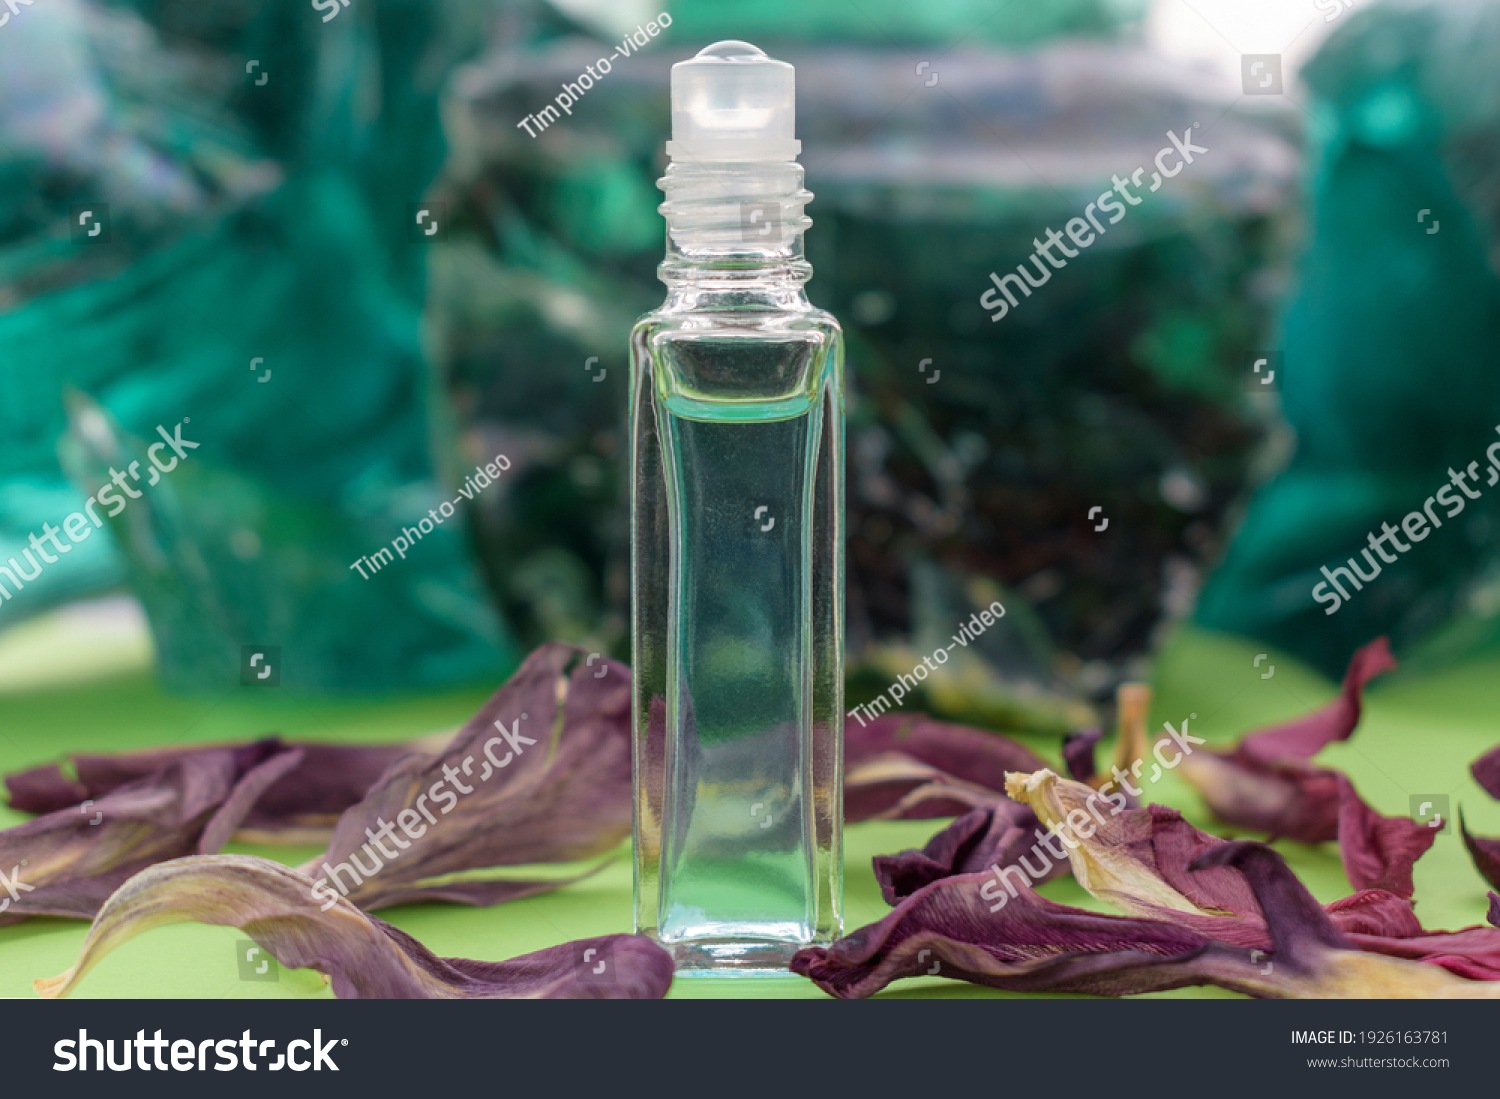 stock-photo-glass-bottle-with-perfume-ba